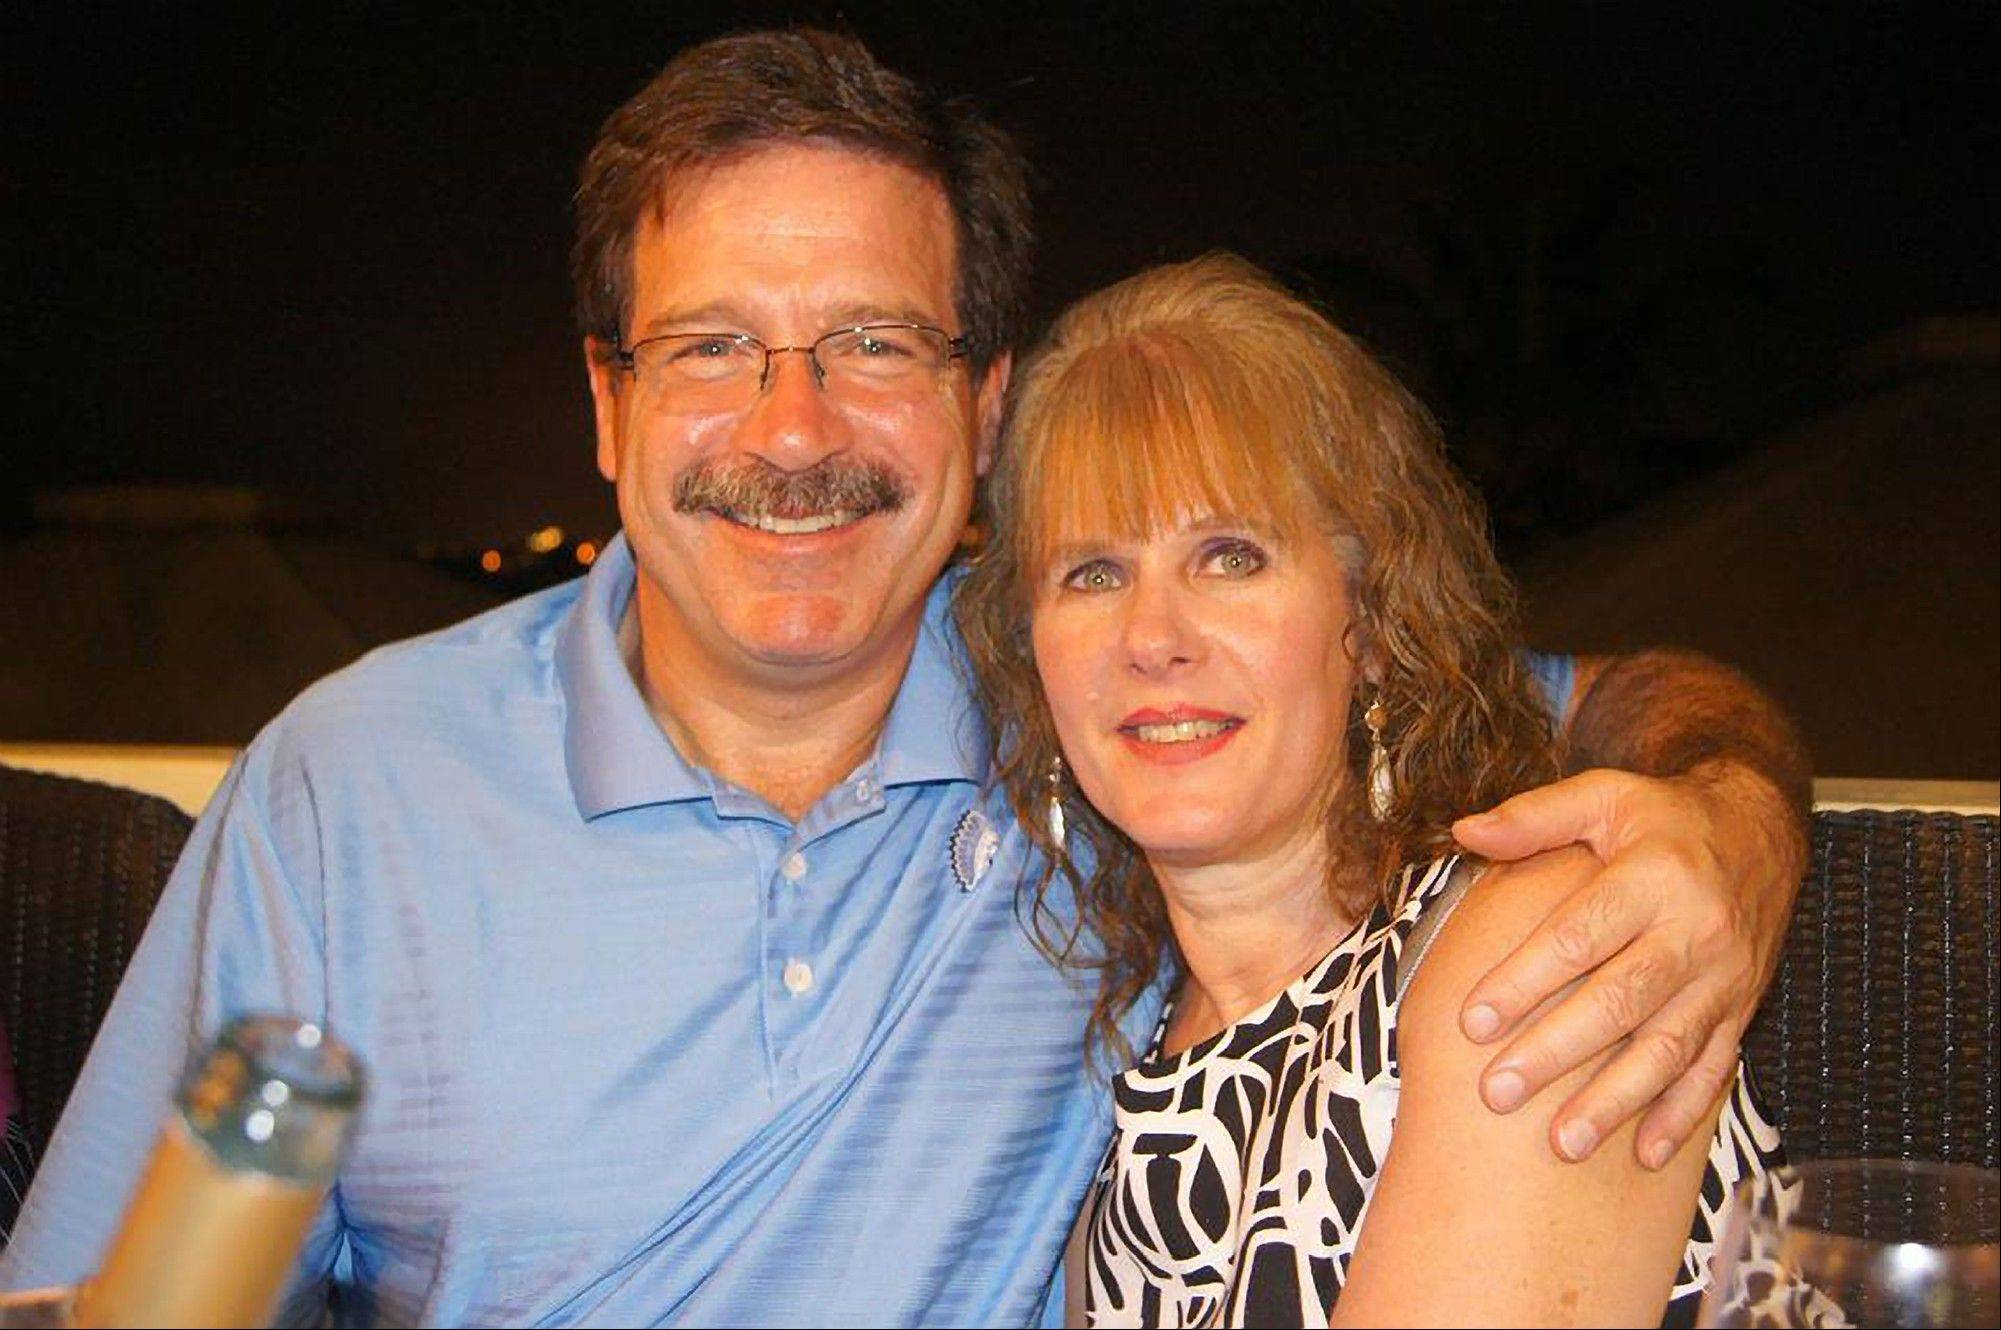 In this undated photo provided by Mark Sherlach, Mark Sherlach and his wife, school psychologist Mary Sherlach, pose for a photo. Mary Sherlach was killed Friday when a gunman opened fire at Sandy Hook Elementary School in Newtown, Conn., killing 26 children and adults at the school.